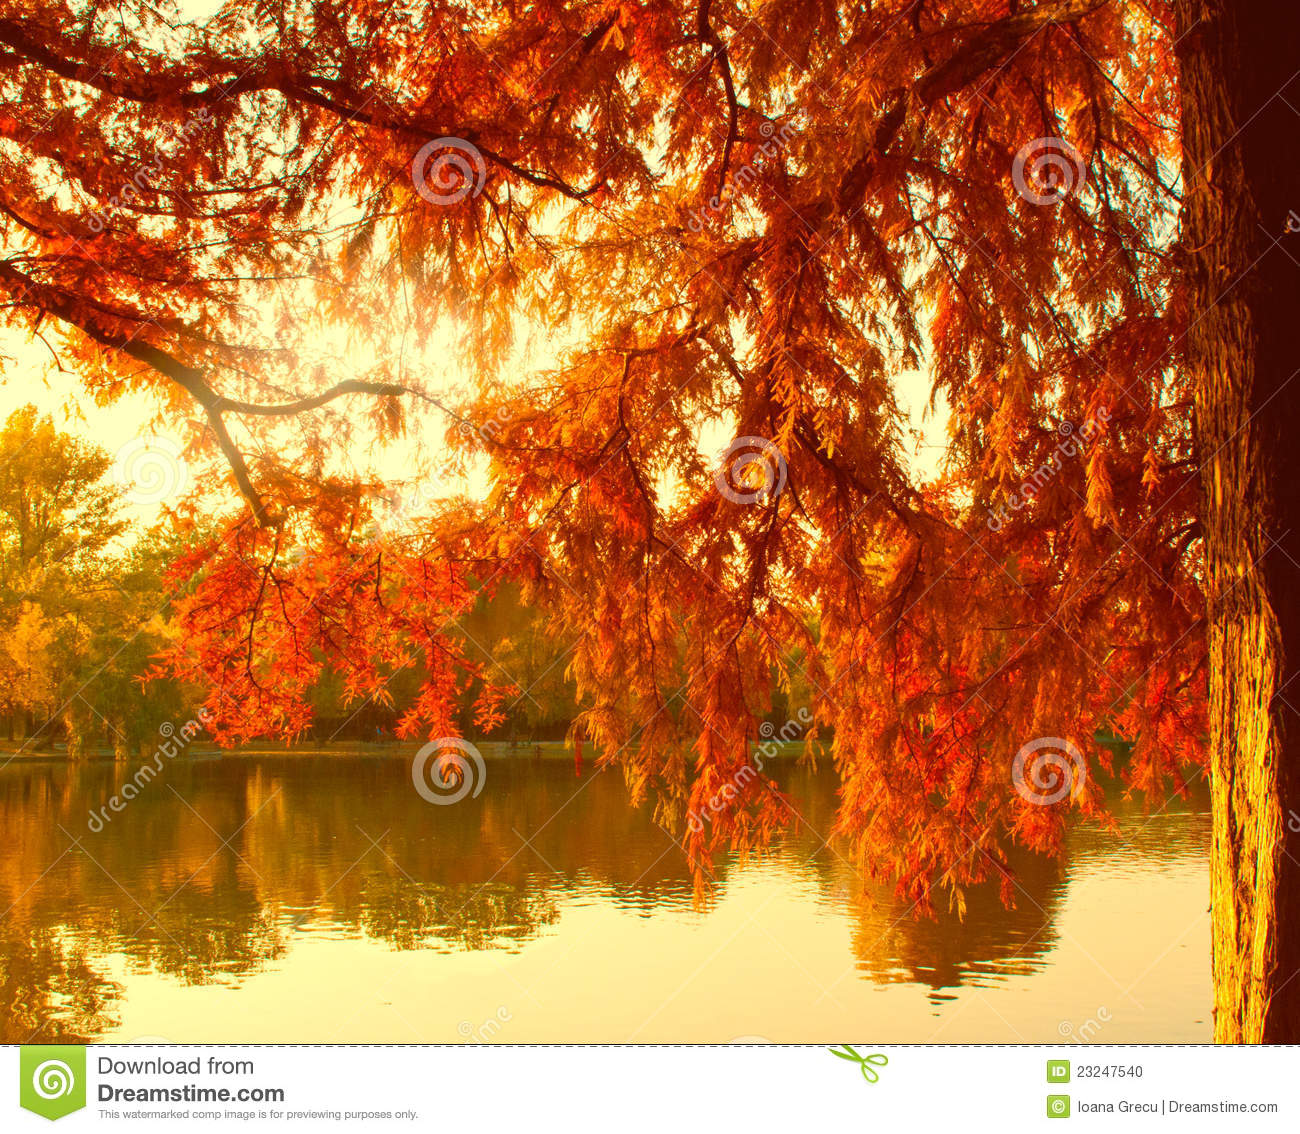 Autumn Leaf Fall Wallpaper Autumn Lake In Warm Colors Stock Photo Image Of Lake